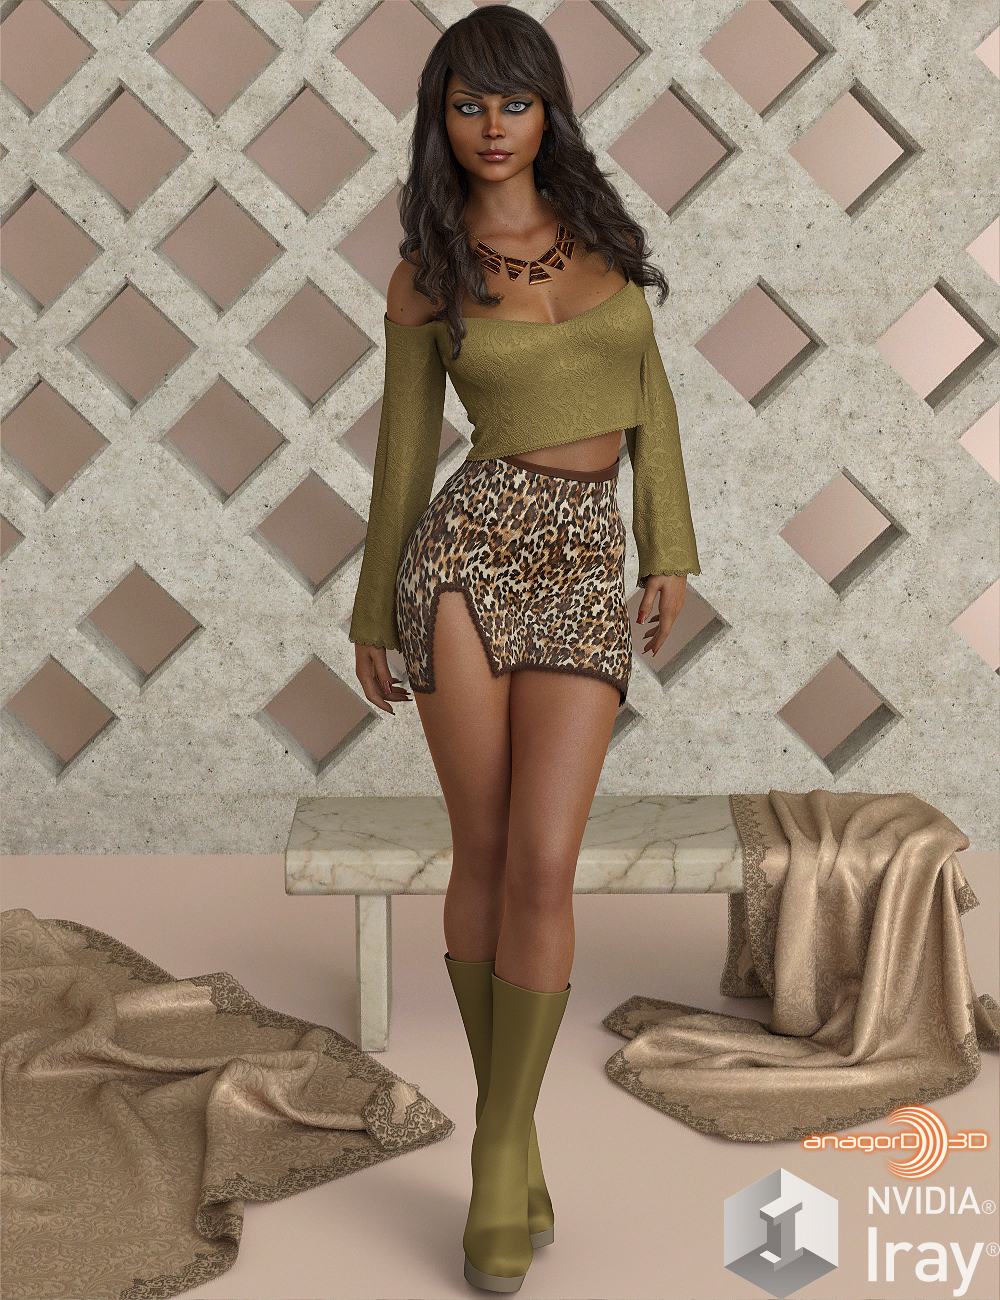 VERSUS - Hot N Cold Clothing Set for Genesis 8 Females for iRay and dForce by Anagord